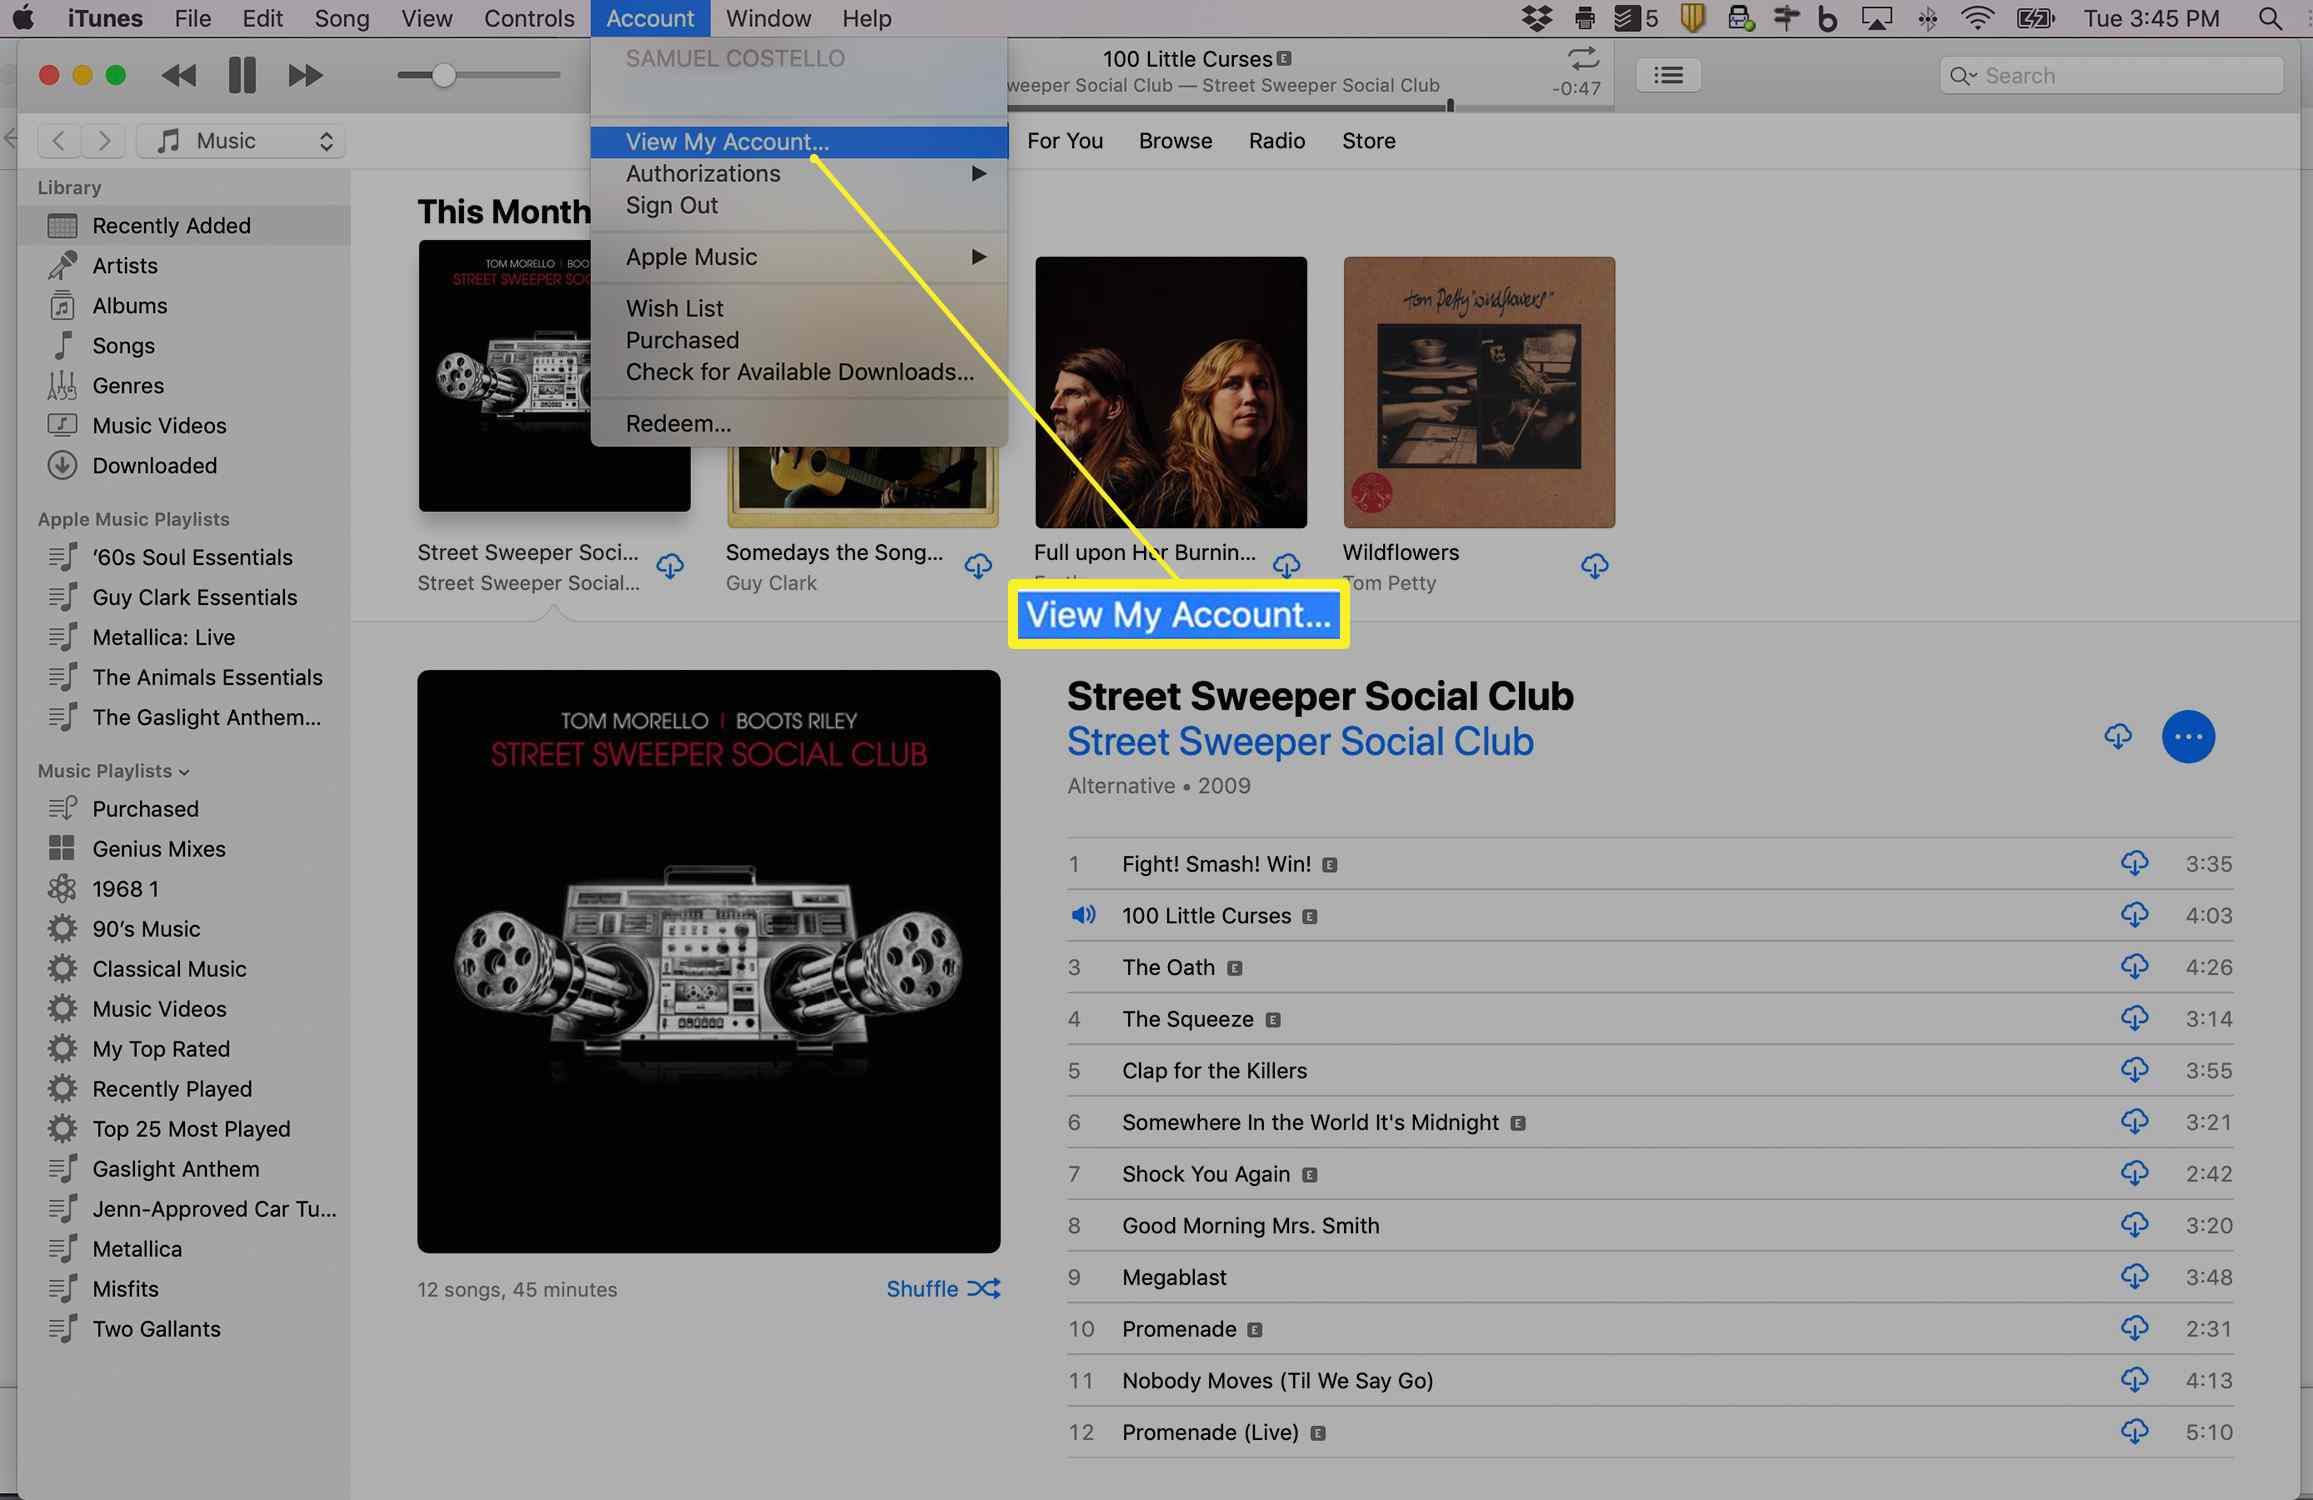 iTunes showing View My Account option